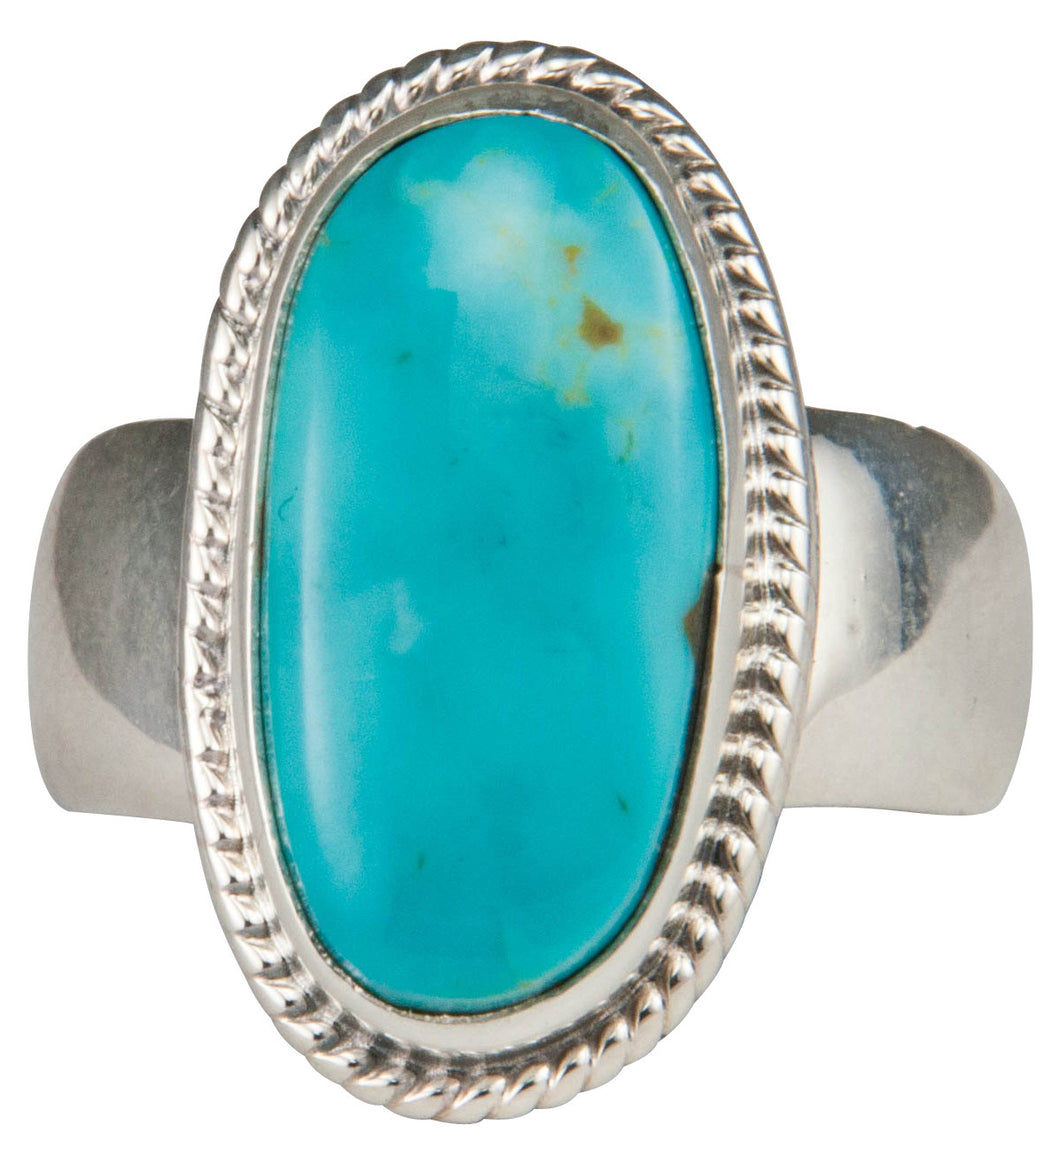 Navajo Native American Kings Manassa Turquoise Ring Size 7 by Piaso SKU229641